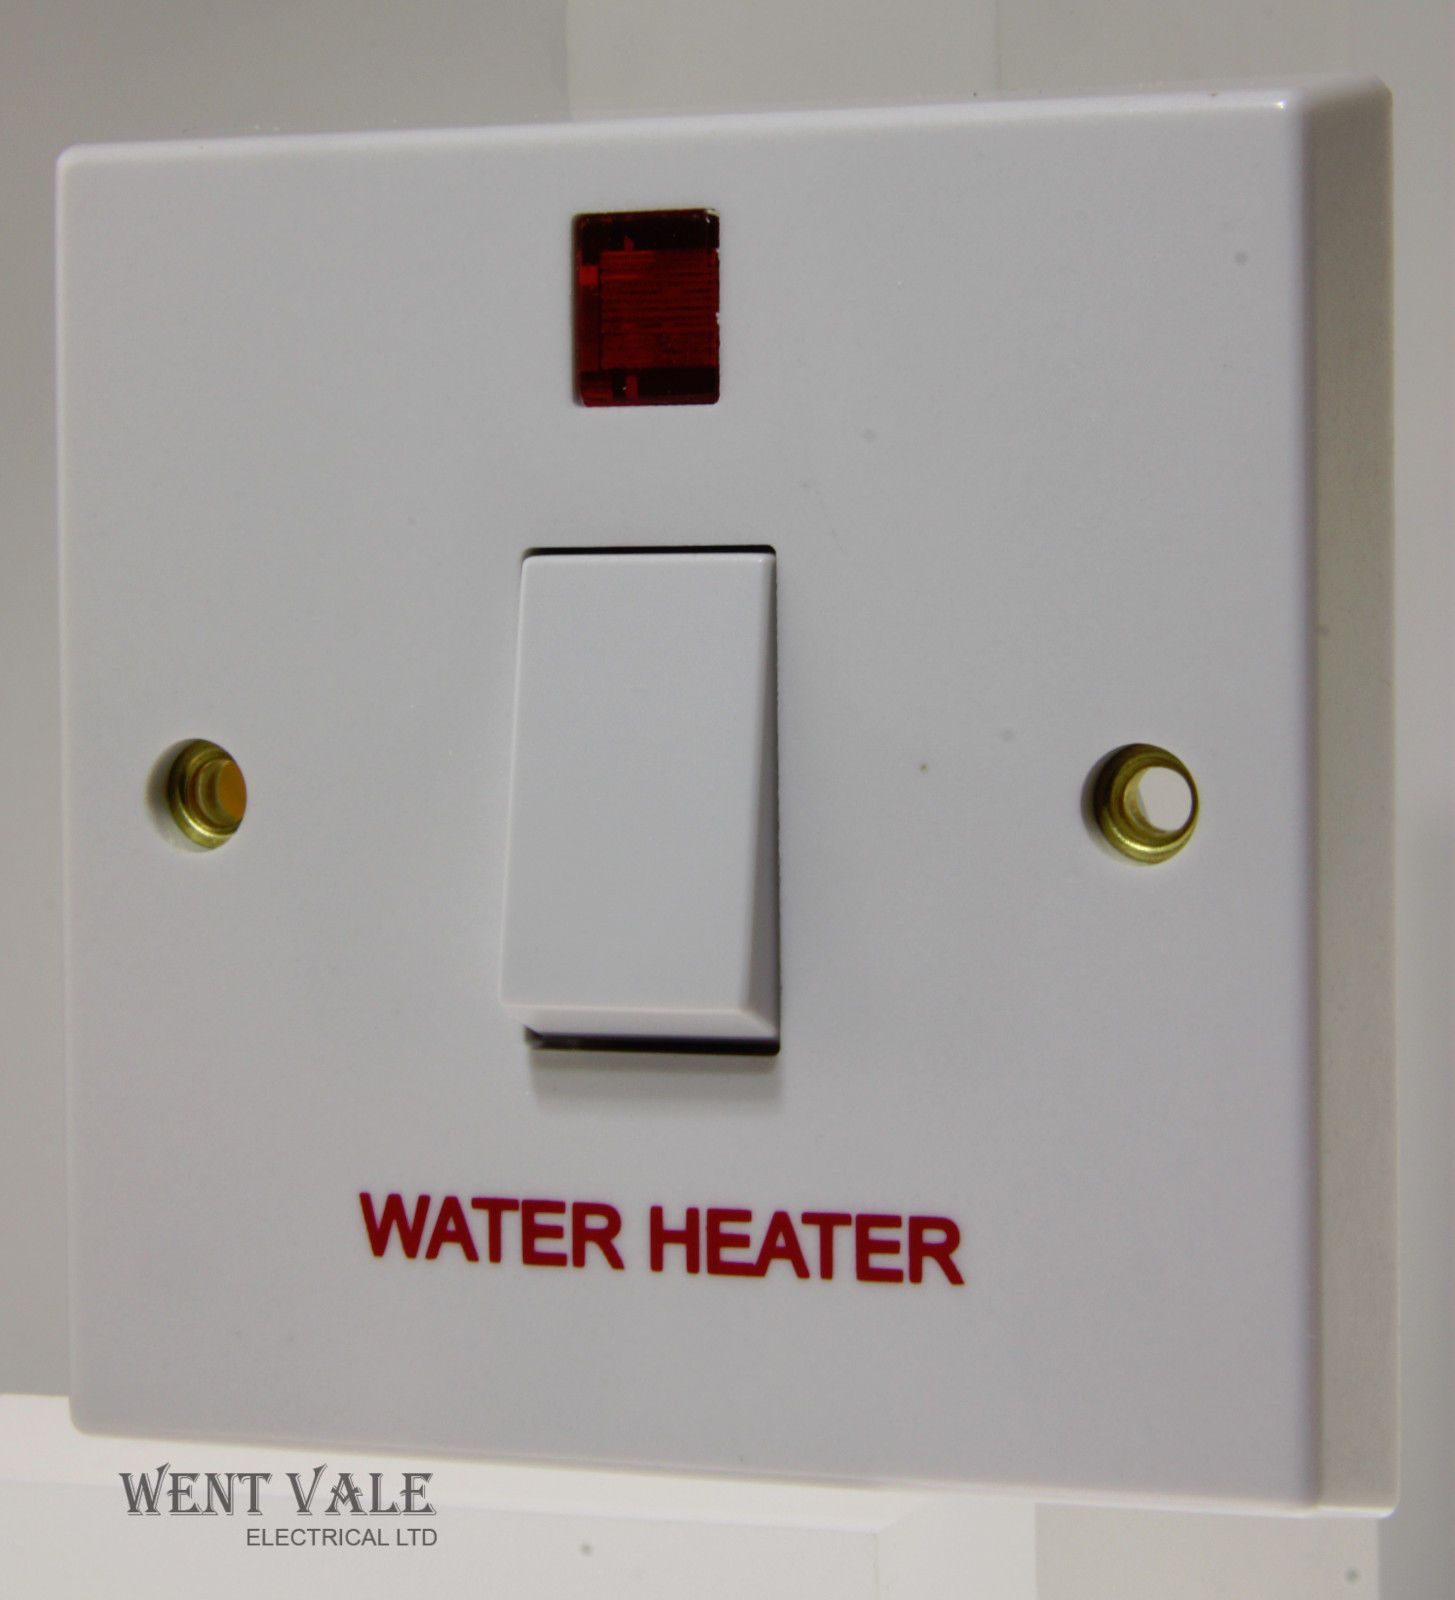 Volex - VX1060WH - 20a Moulded Double Pole Switch Neon Marked Water Heater